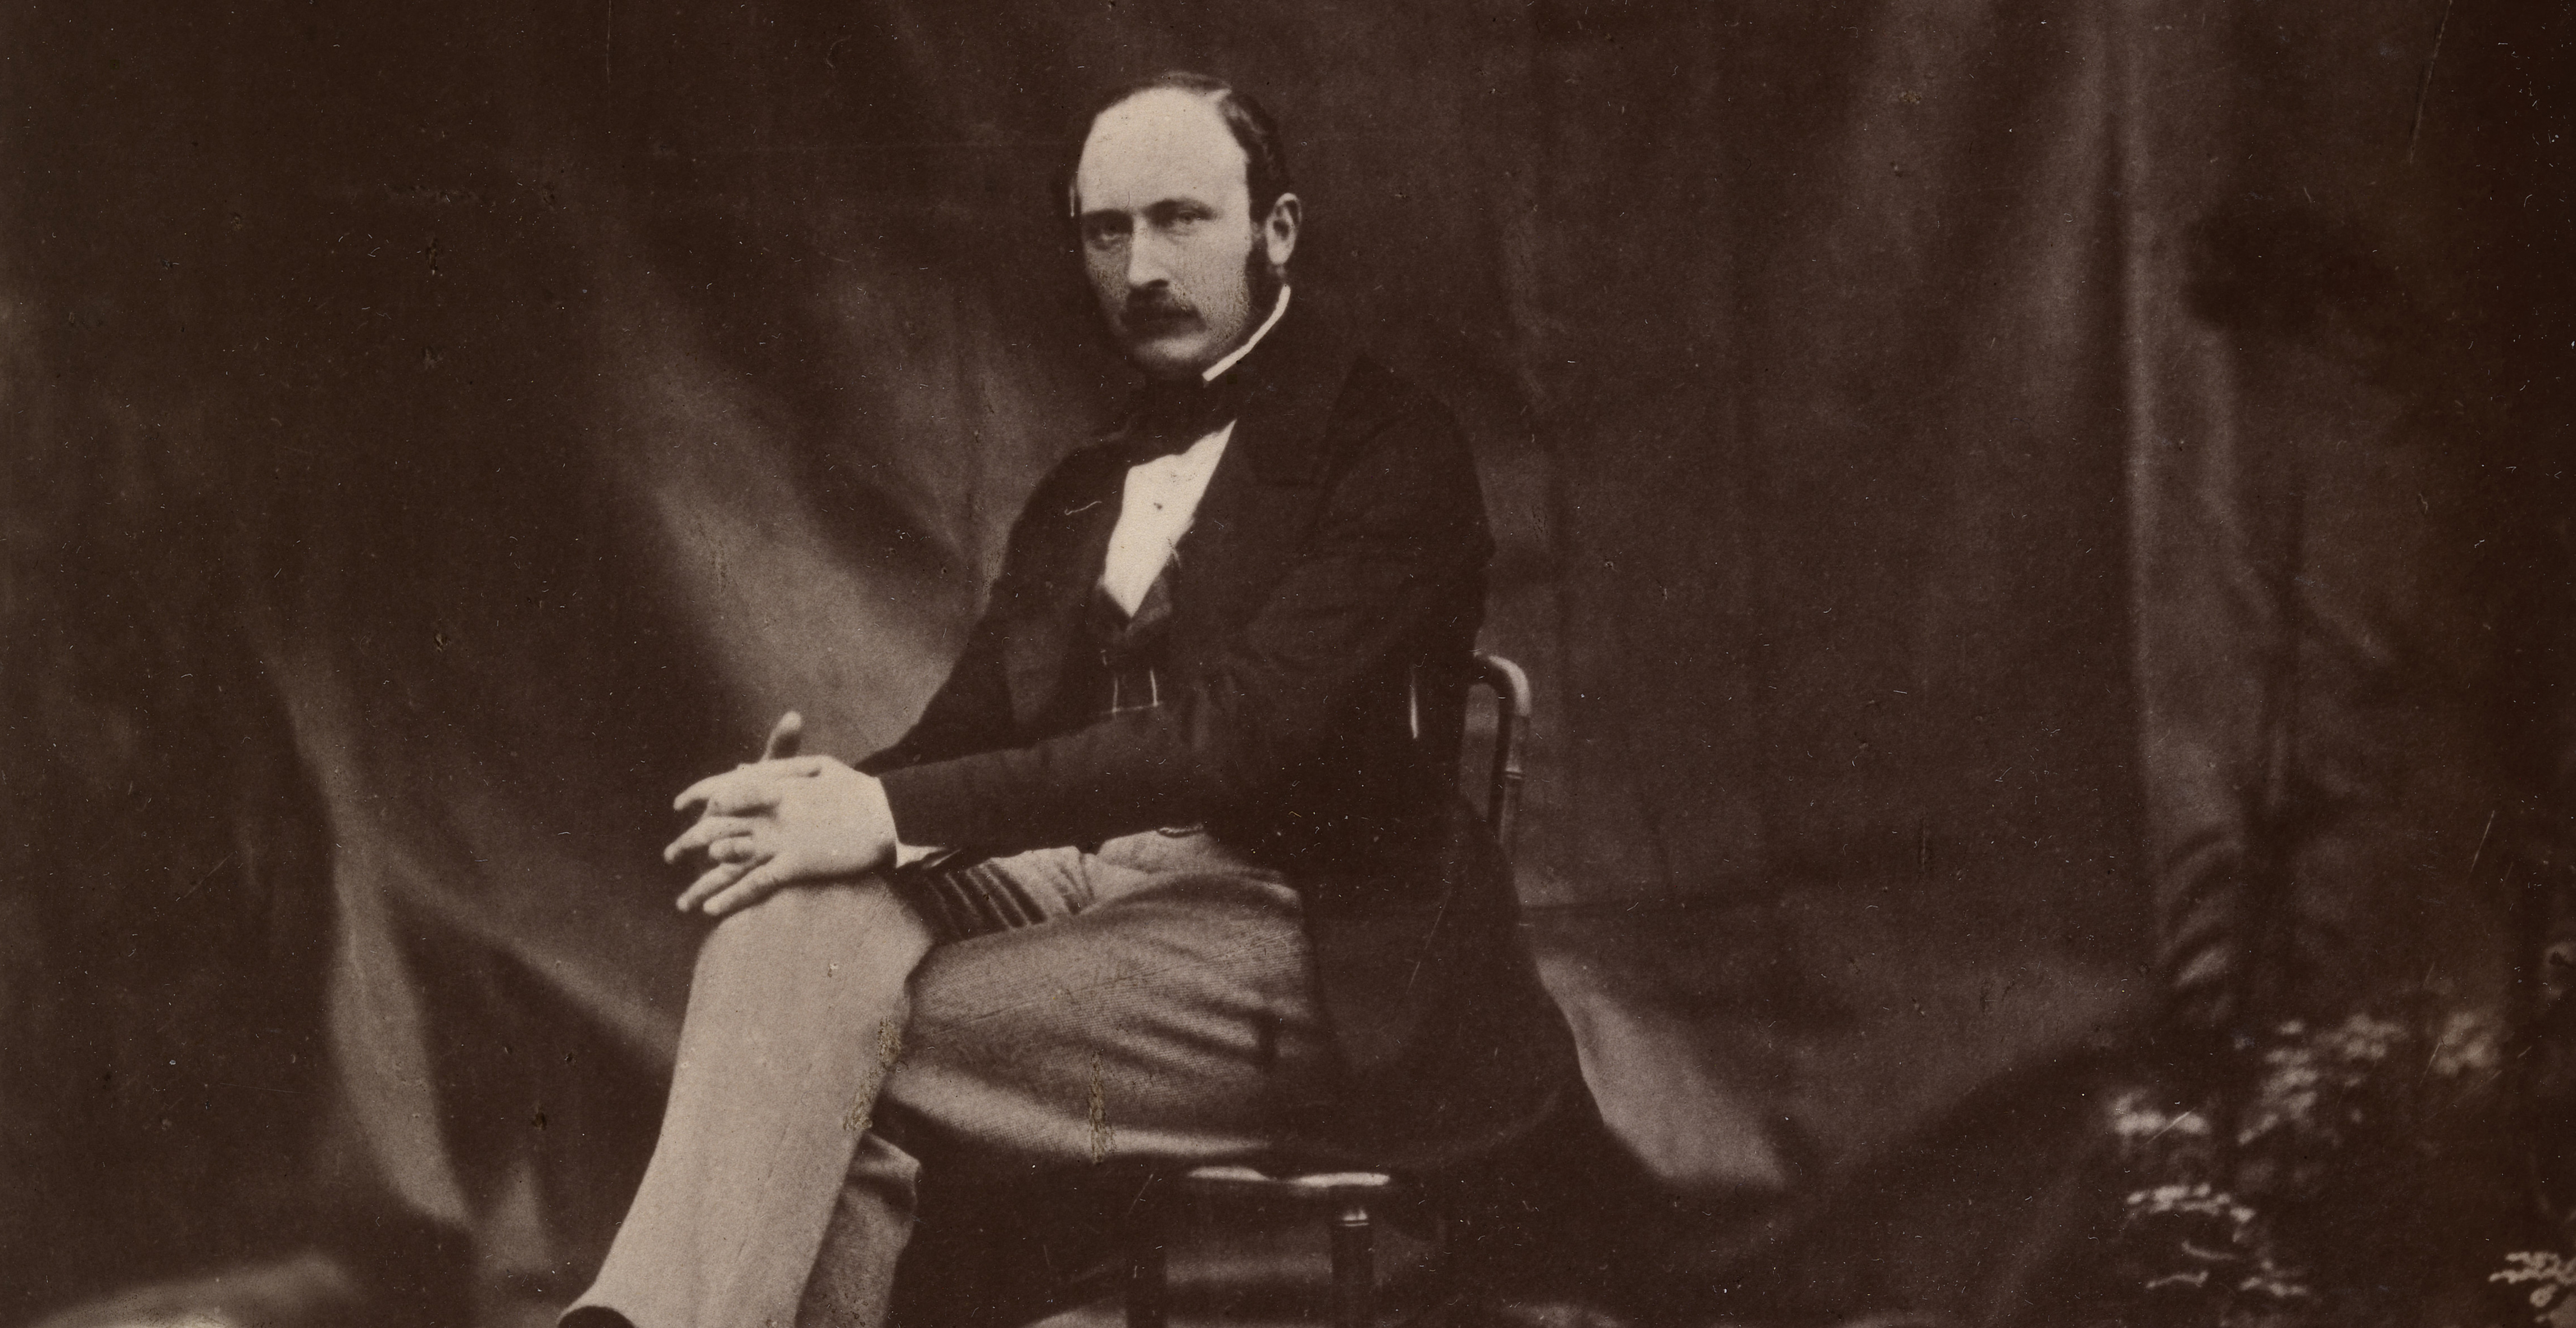 Portrait photograph of Prince Albert seated on a chair